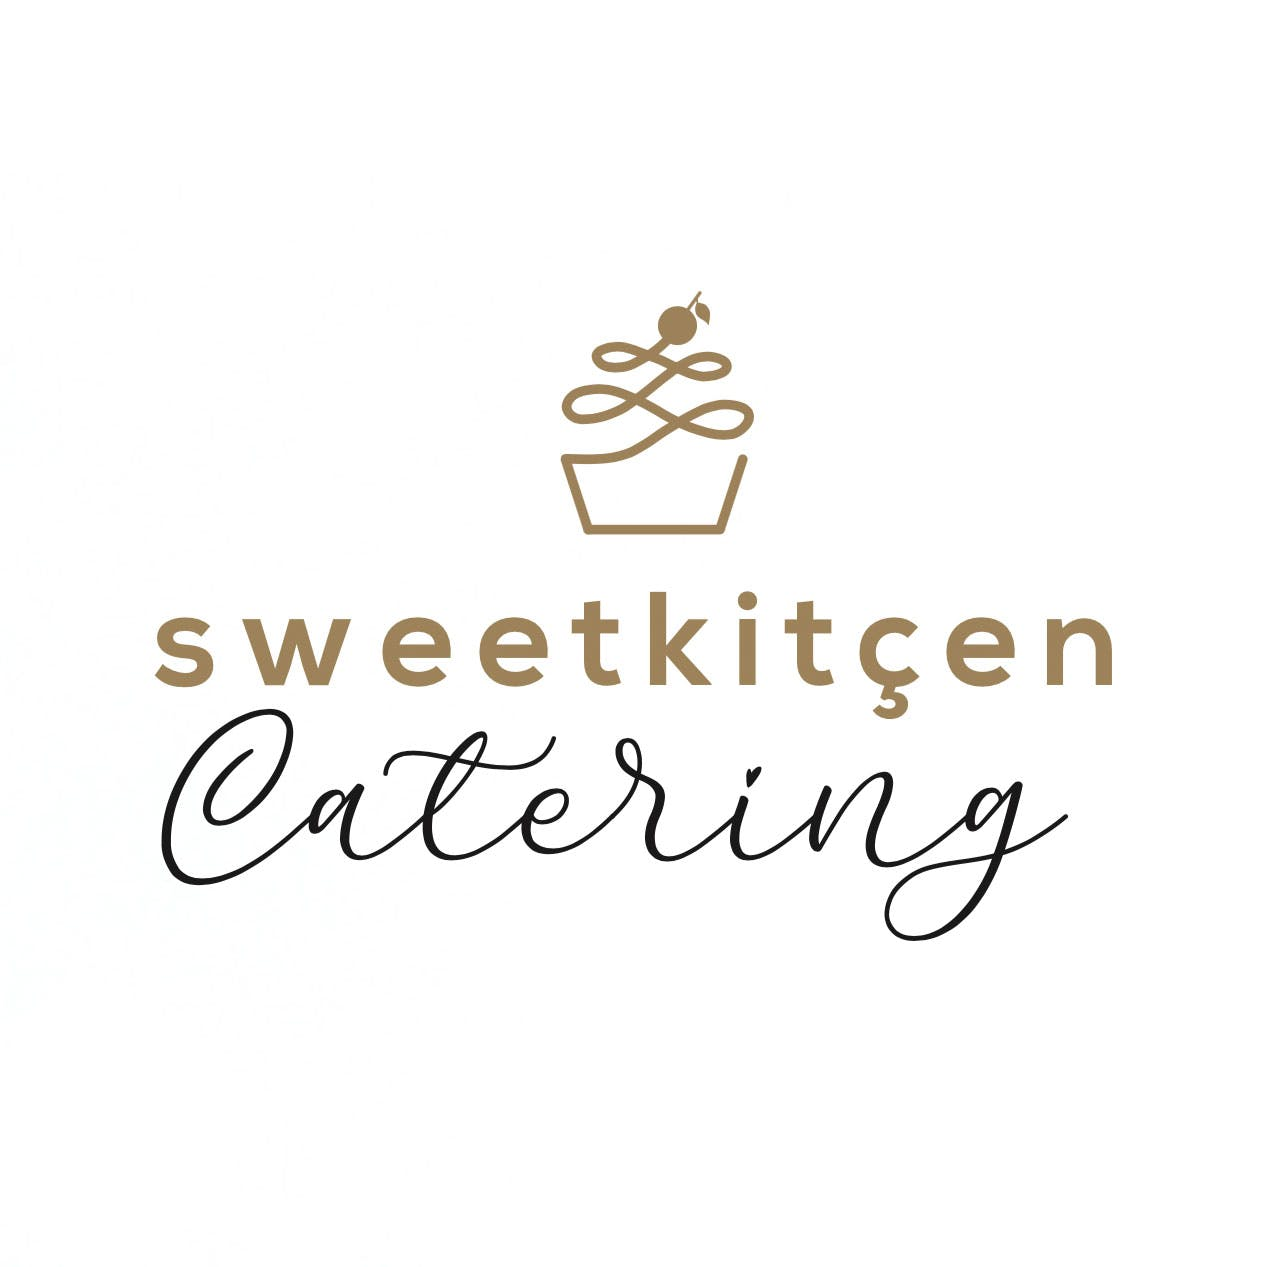 Sweet Kitcen